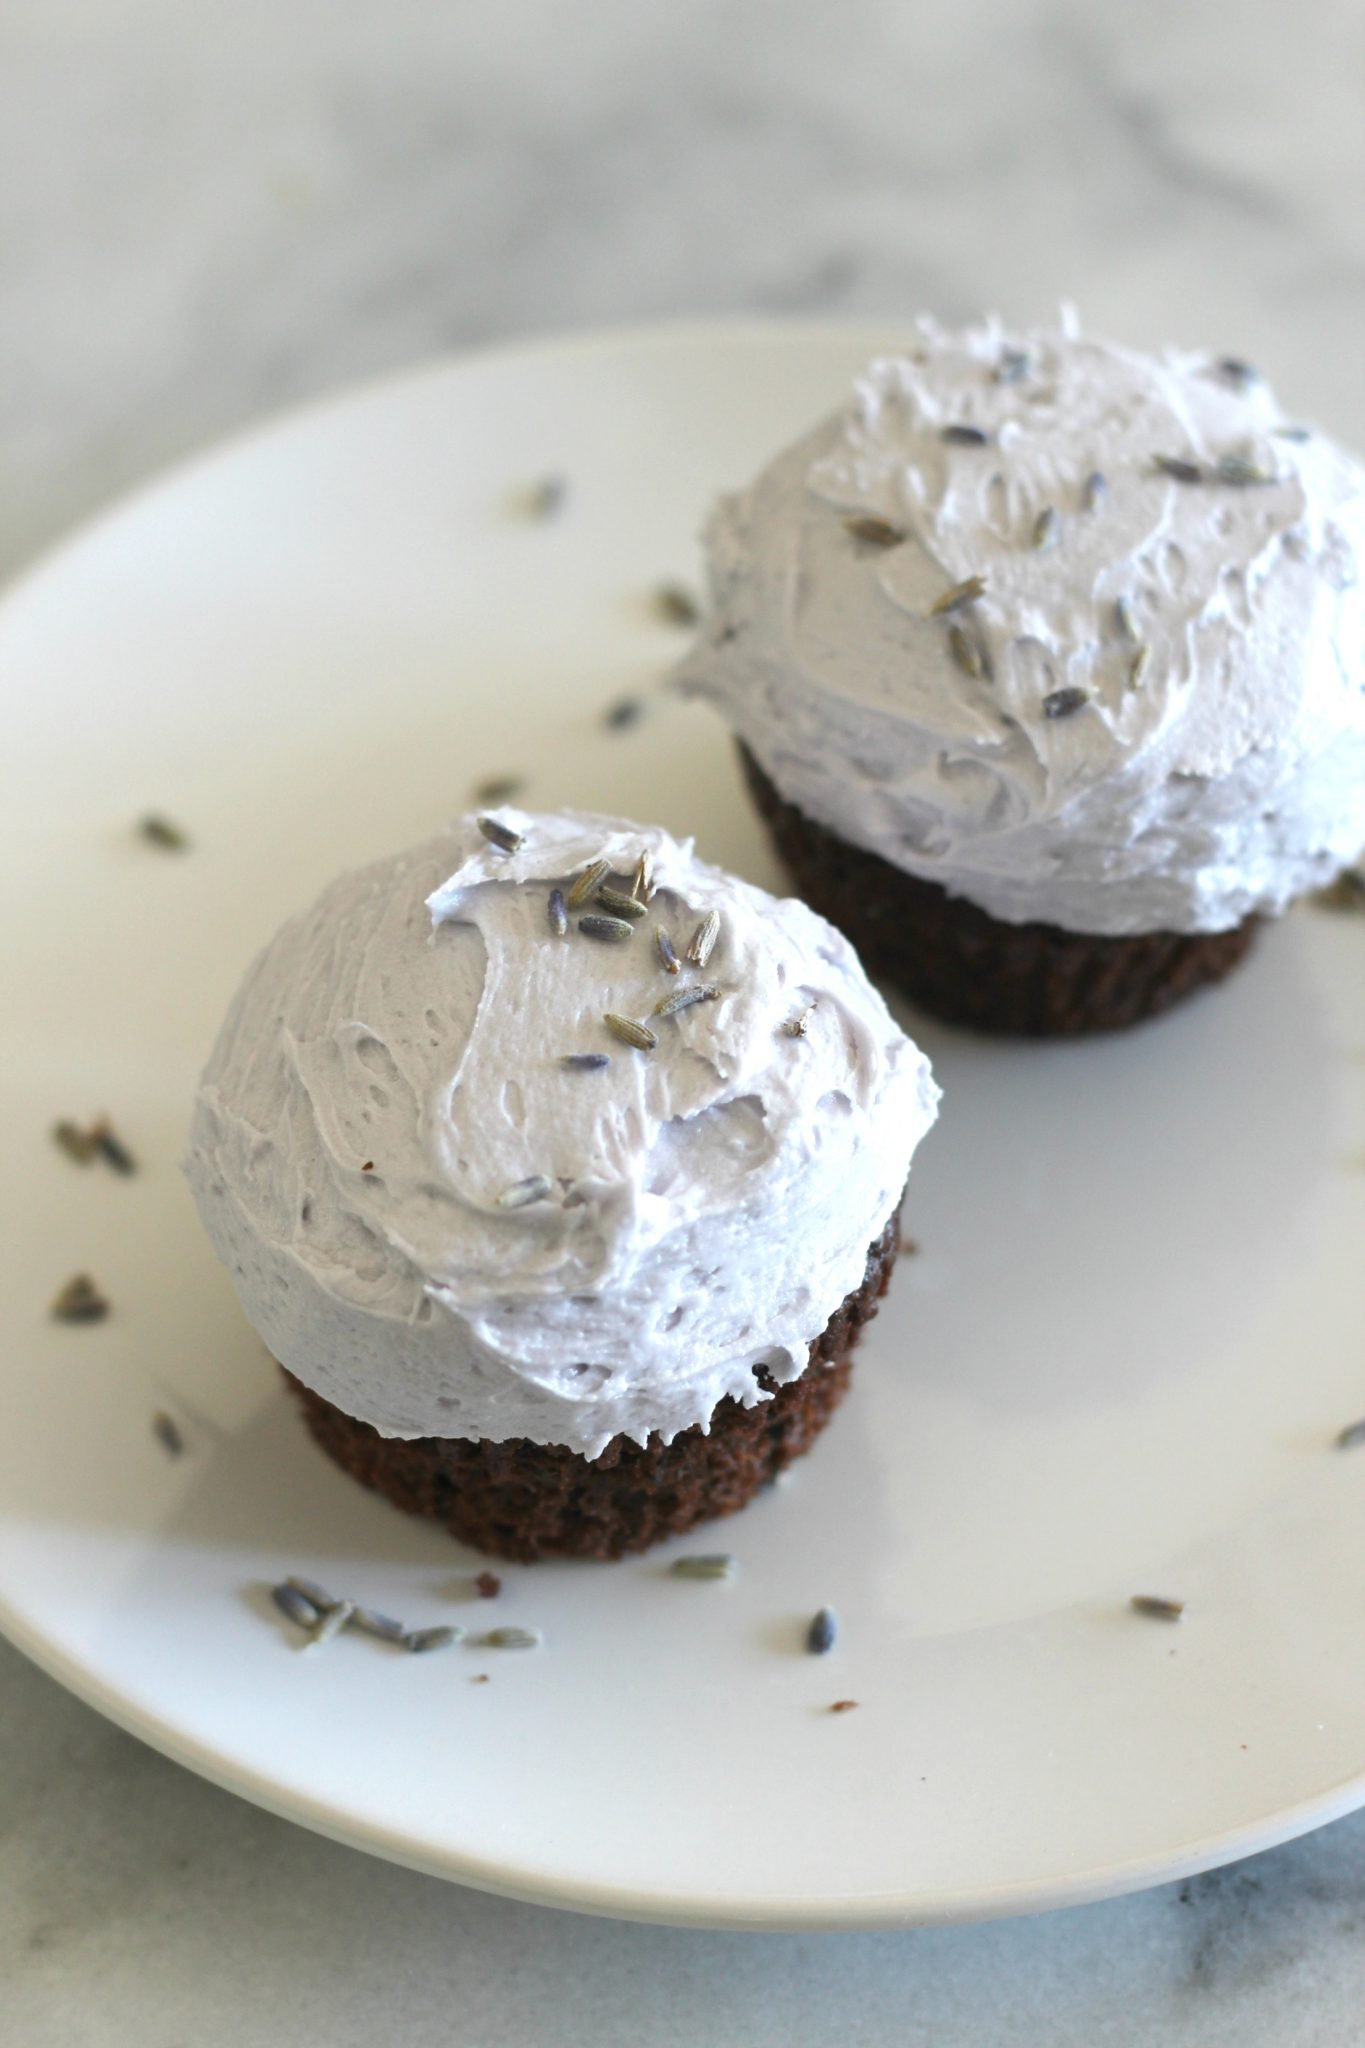 Chocolate Buttermilk Cupcakes with Lavender Buttercream Frosting